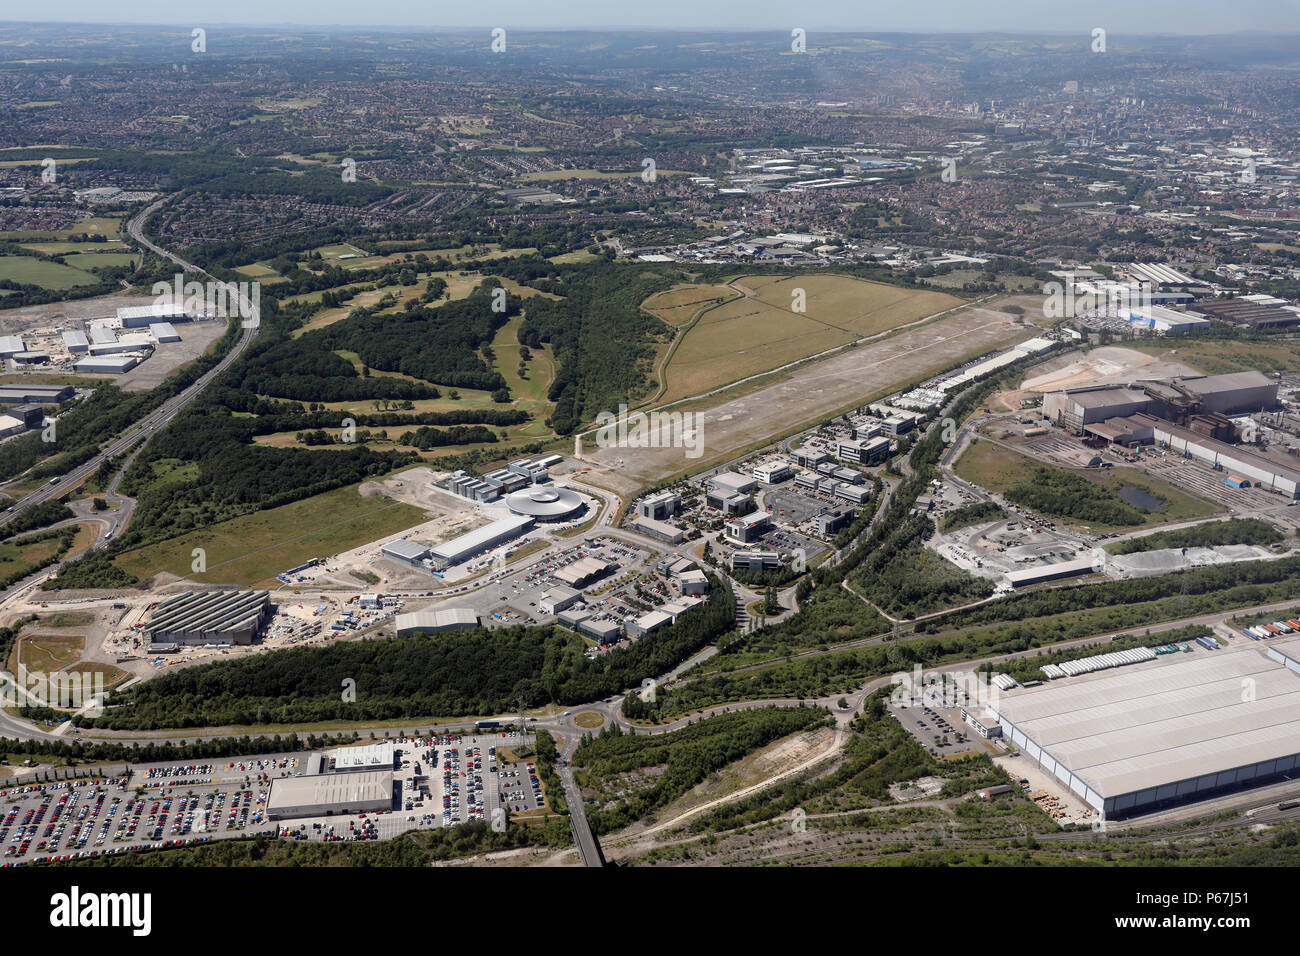 aerial view of the old Sheffield Airport, now closed, UK - Stock Image